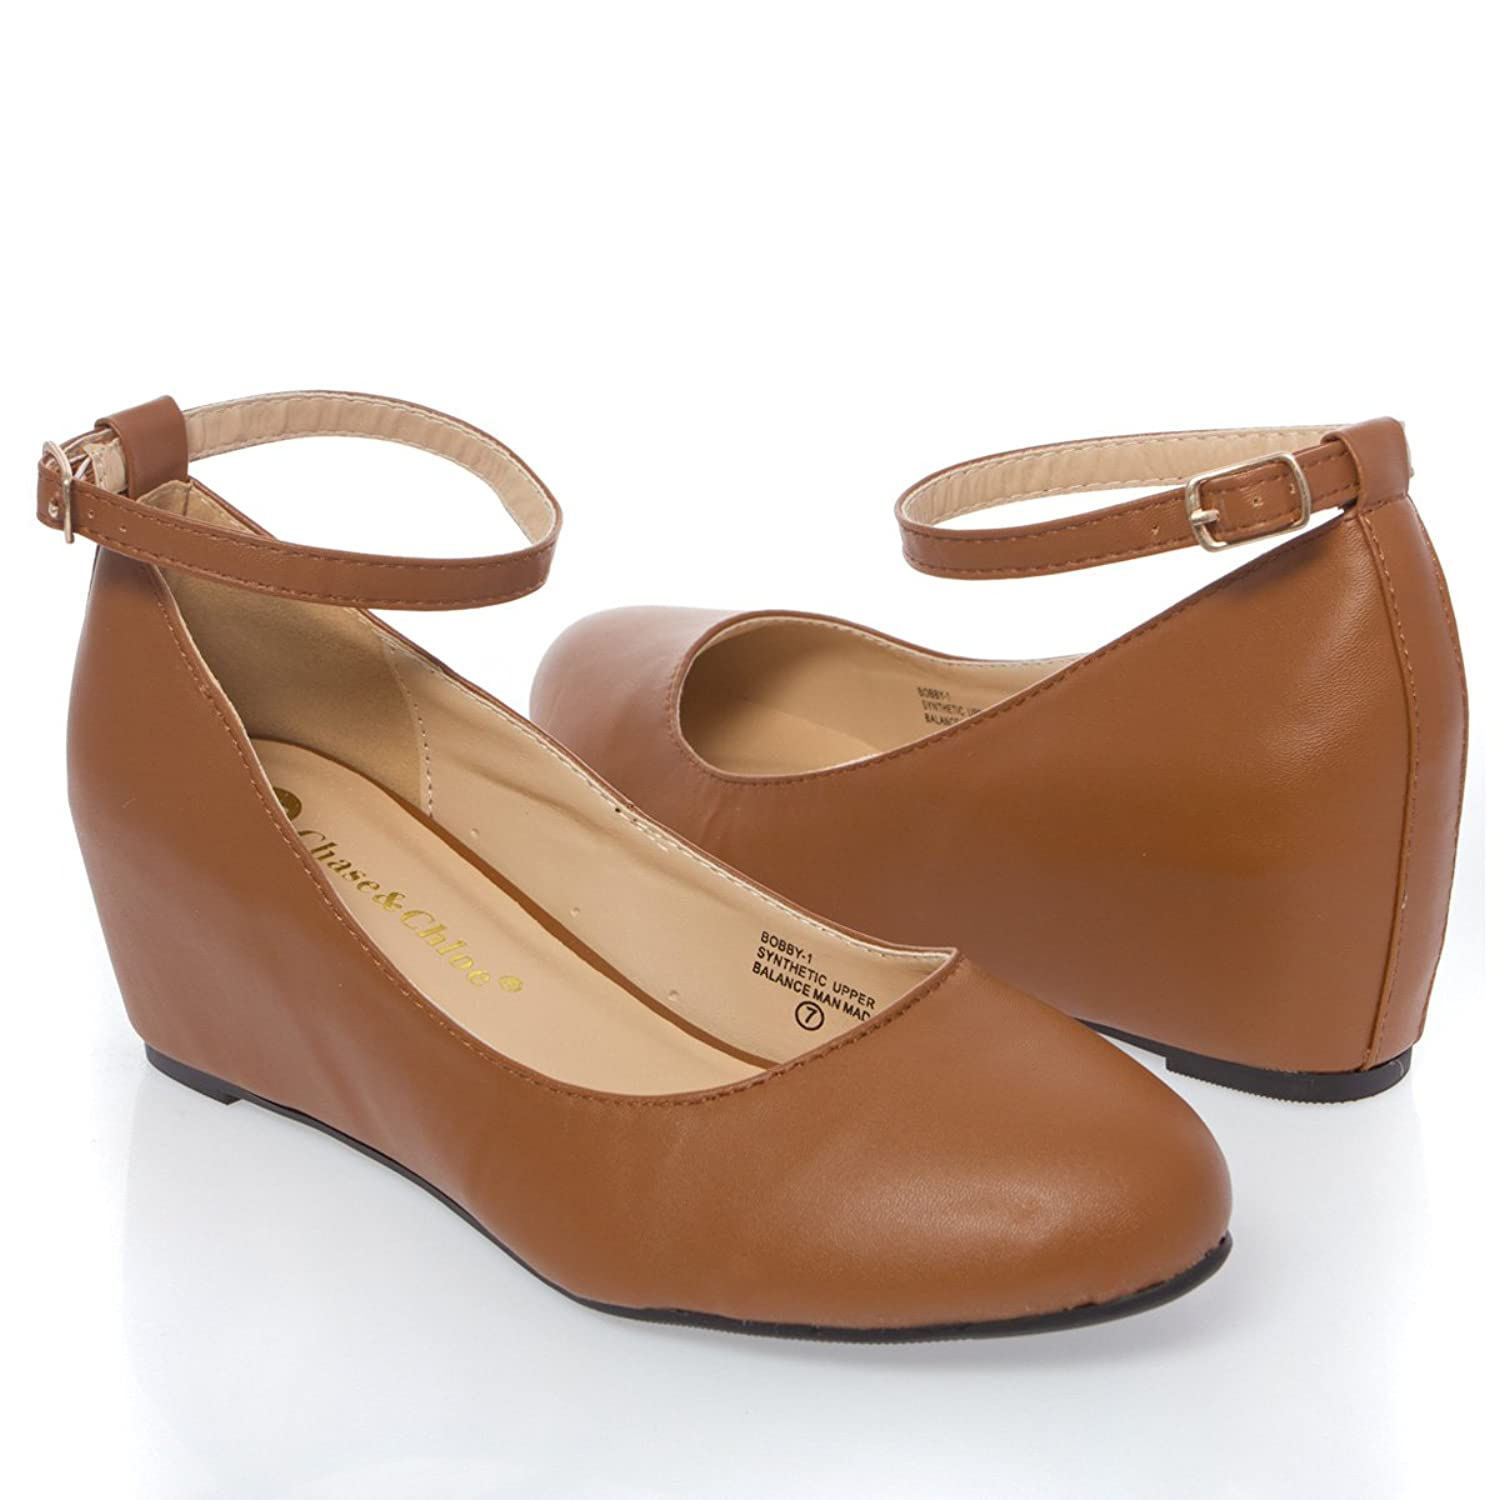 V-Luxury Womens 36-BOBBY1 Closed Toe Med Heel Wedge Shoes, Tan PU Leather